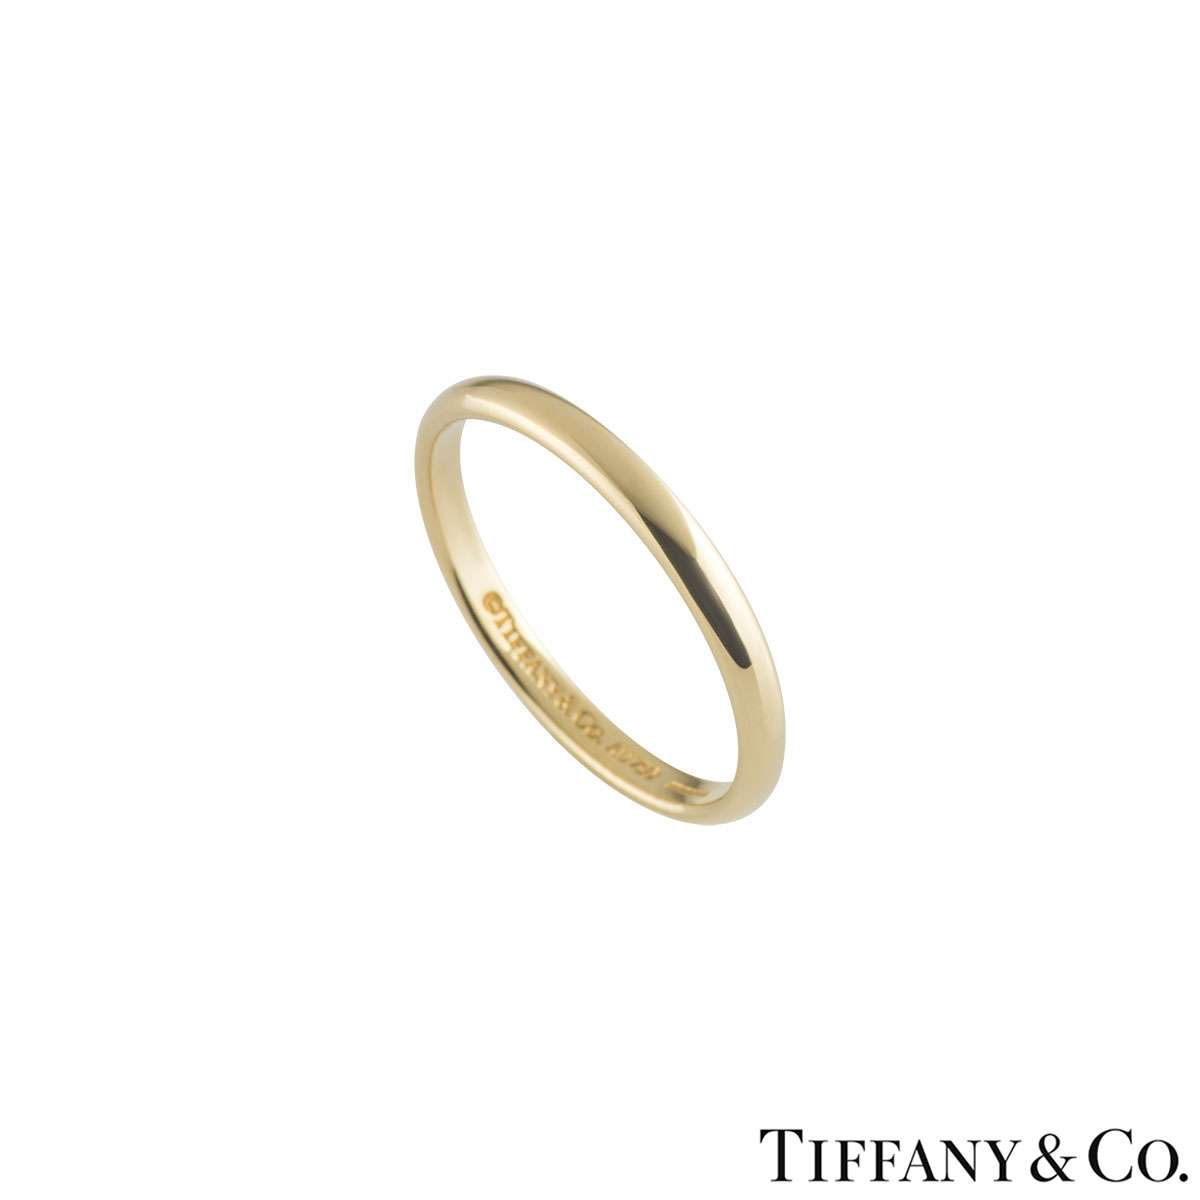 Tiffany & Co. Yellow Gold Wedding Band Ring